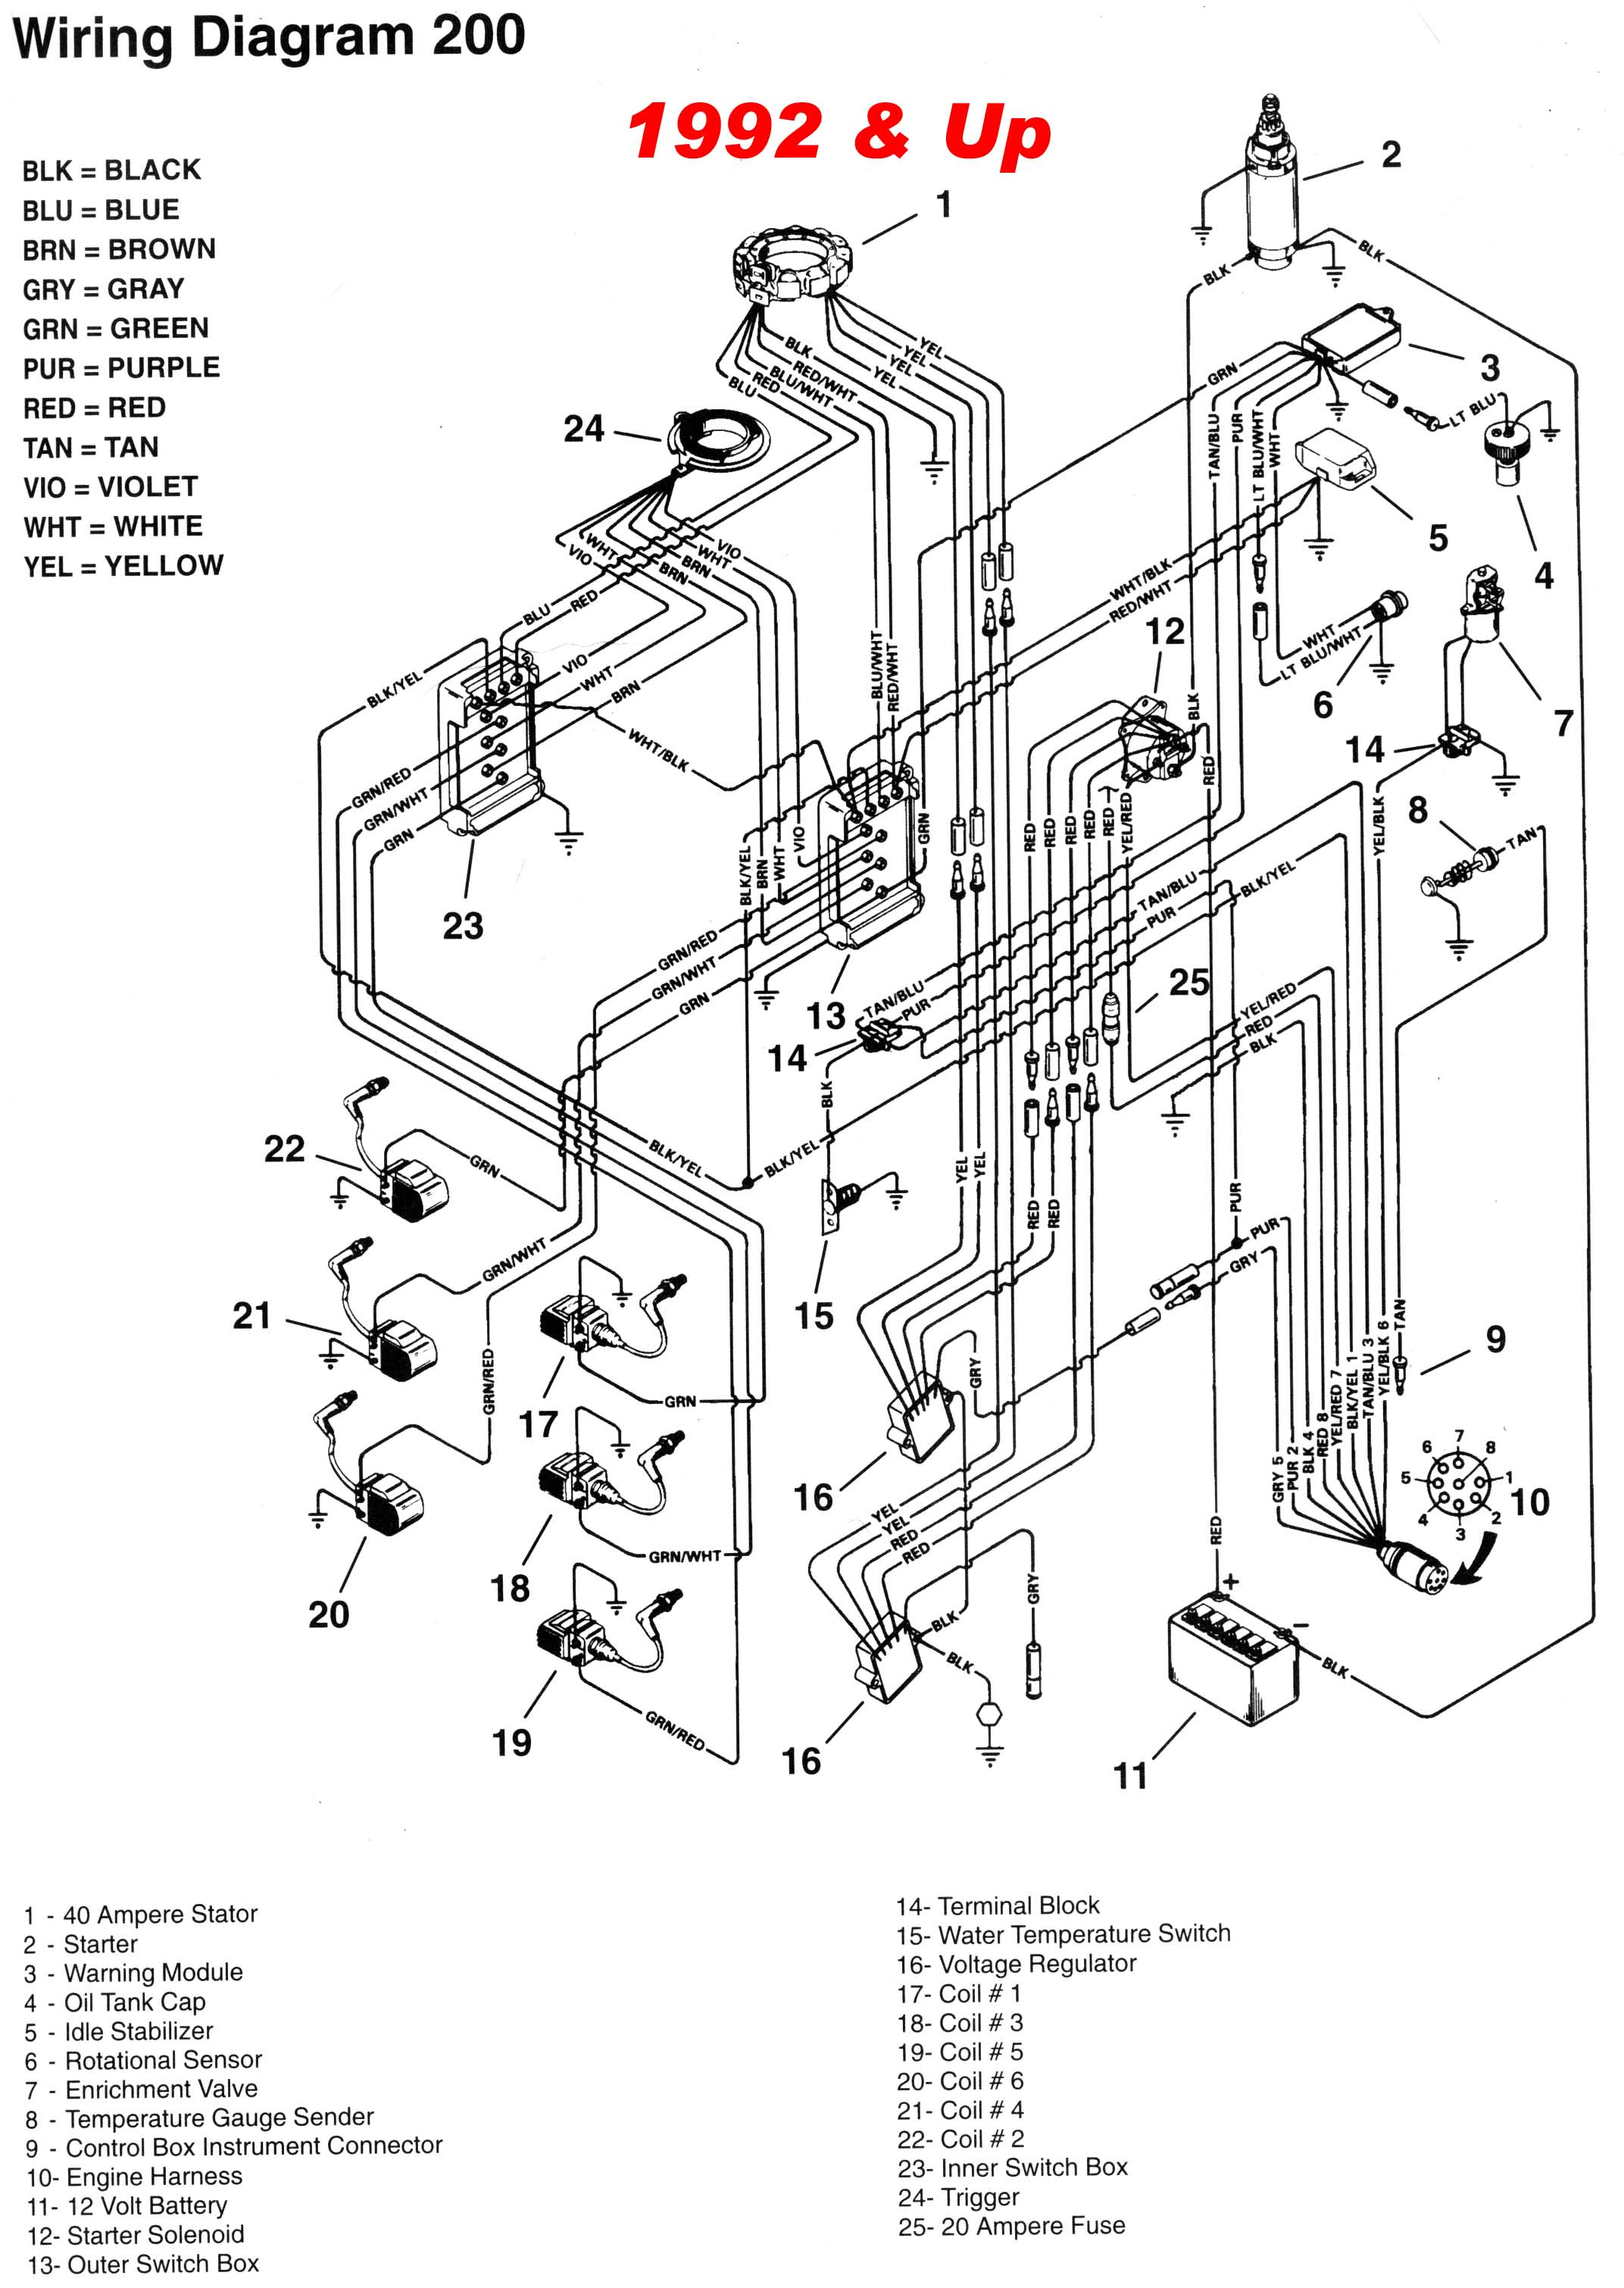 mercury_92up_200_wiring wiring diagram 2001 60 hp mercury outboard readingrat net Yamaha Outboard Wiring Diagram at creativeand.co